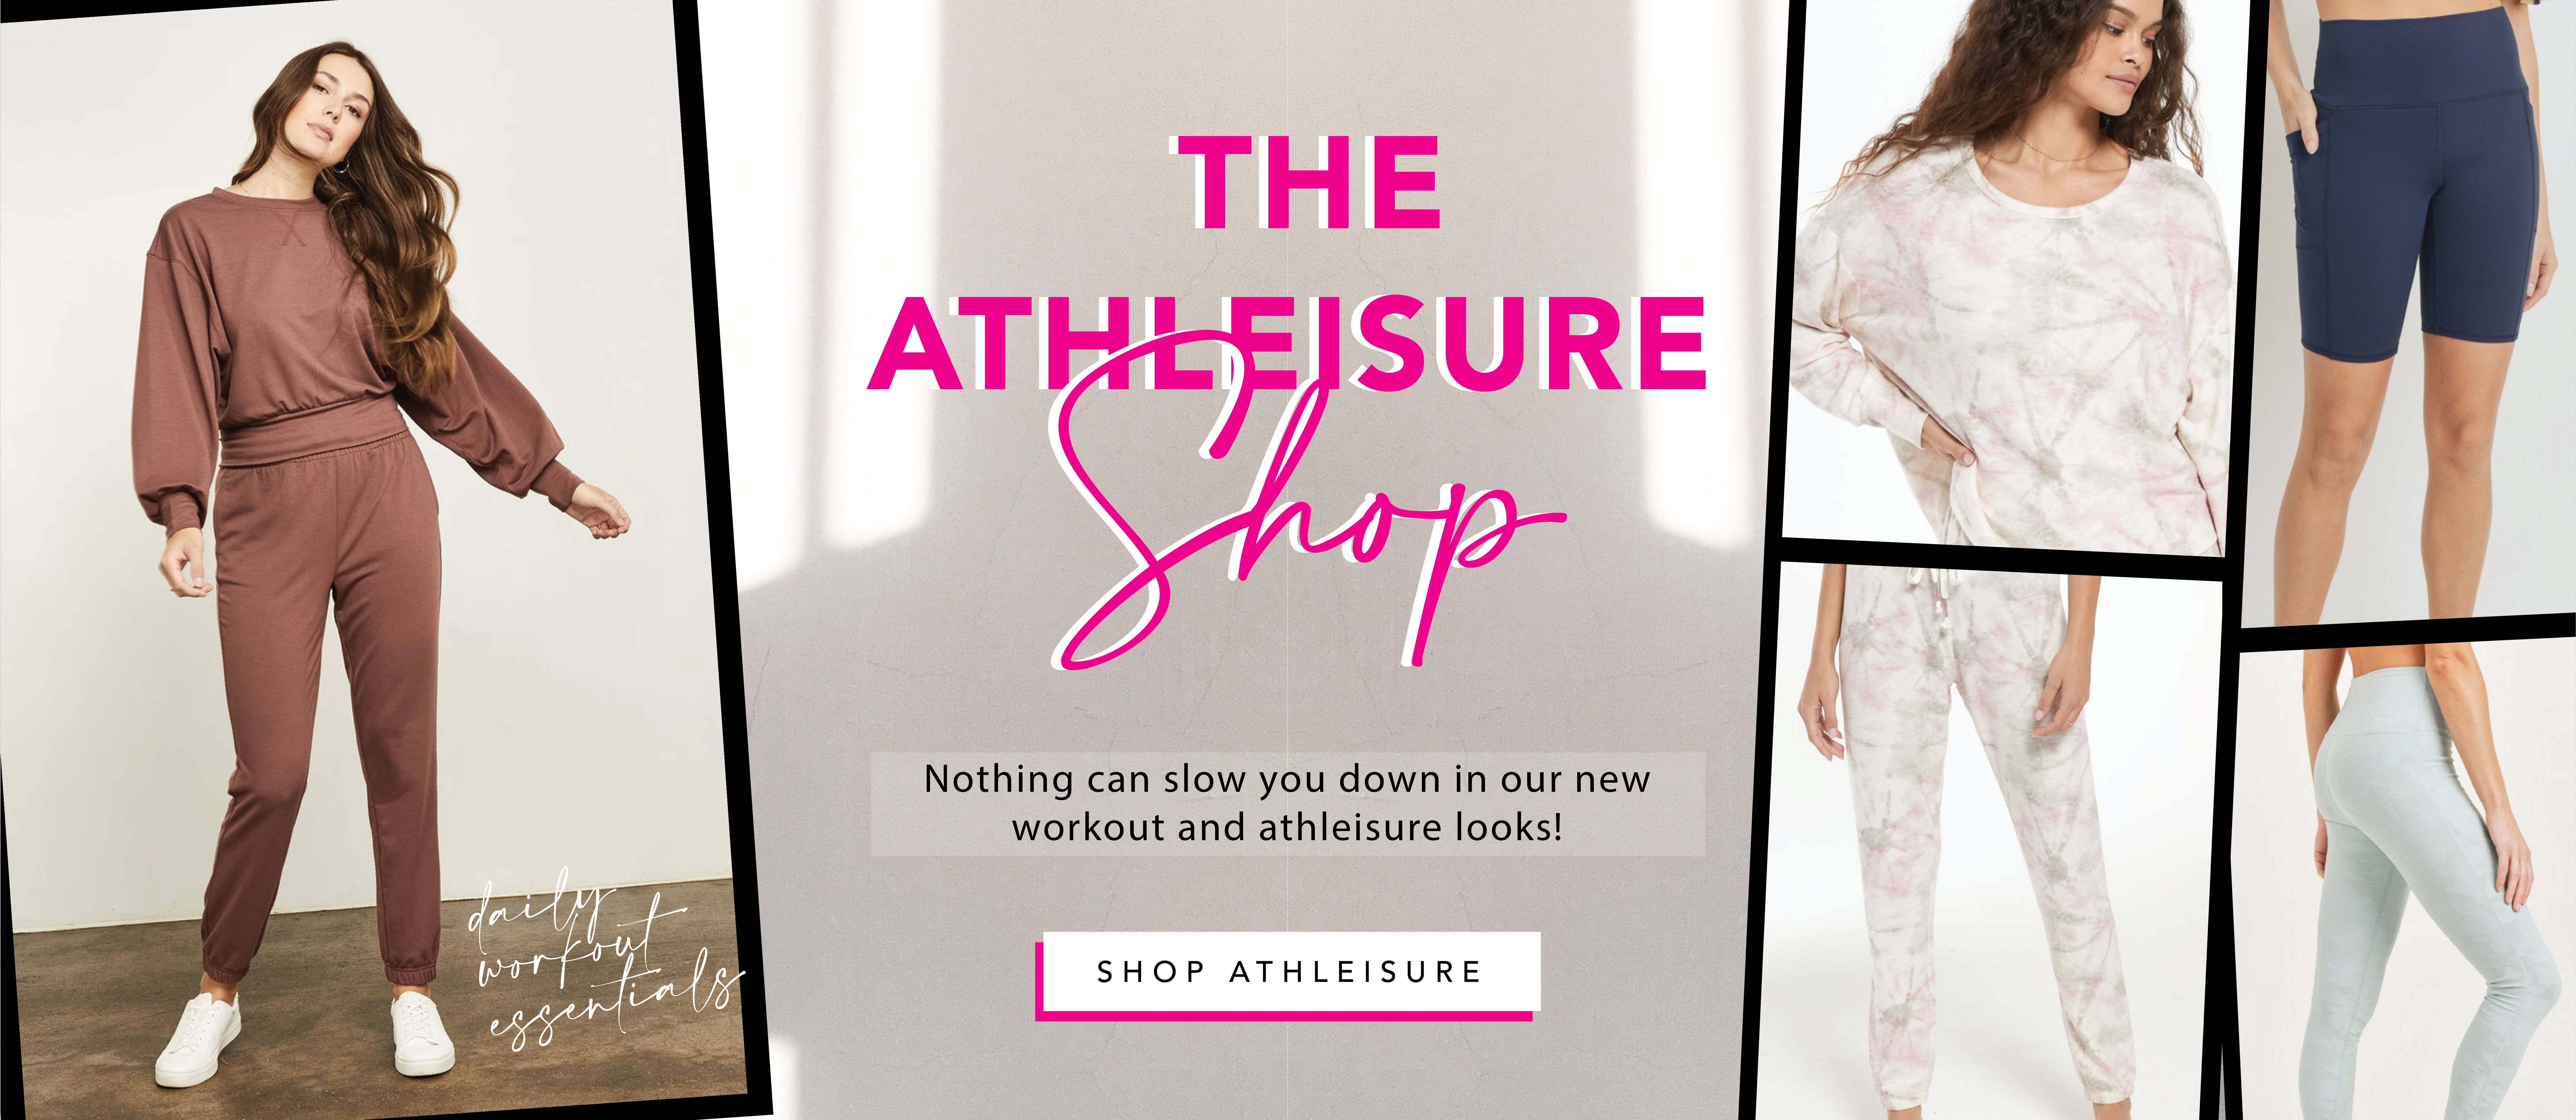 workout and athleisure